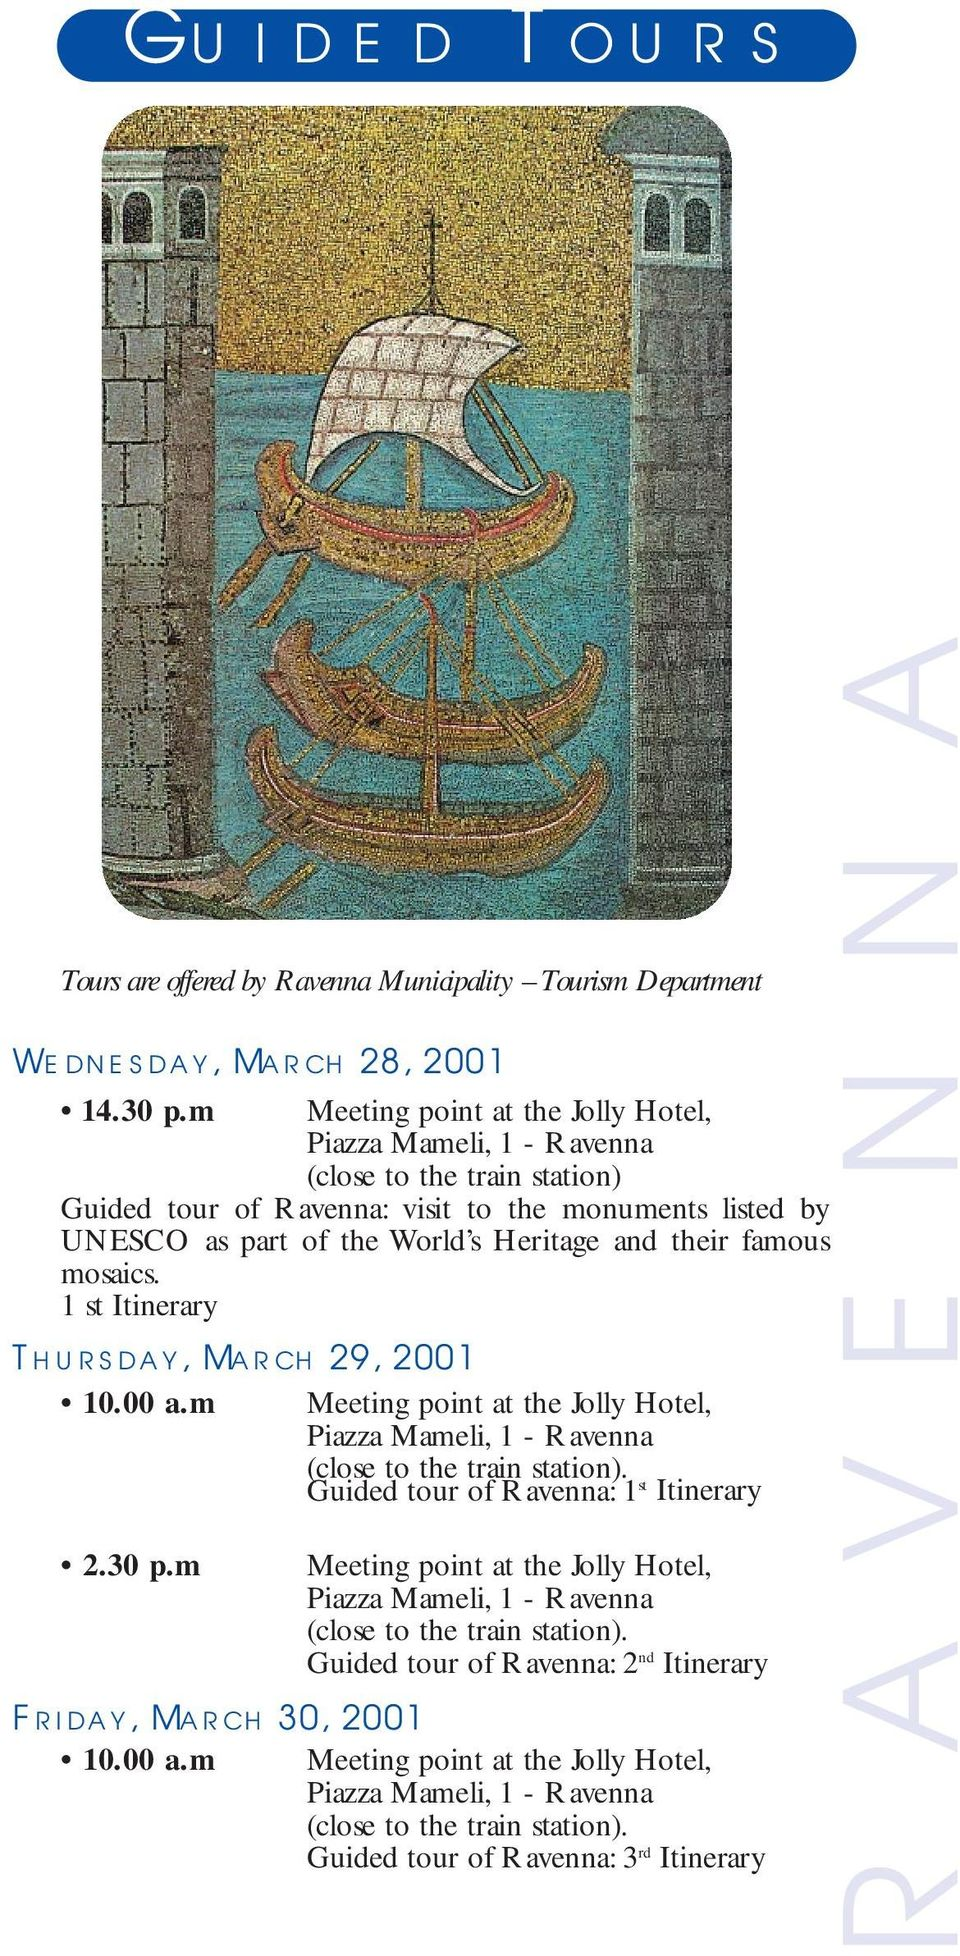 famous mosaics. 1 st Itinerary Thursday, March 29, 2001 10.00 a.m Meeting point at the Jolly Hotel, Piazza Mameli, 1 - Ravenna (close to the train station). Guided tour of Ravenna: 1 st Itinerary 2.